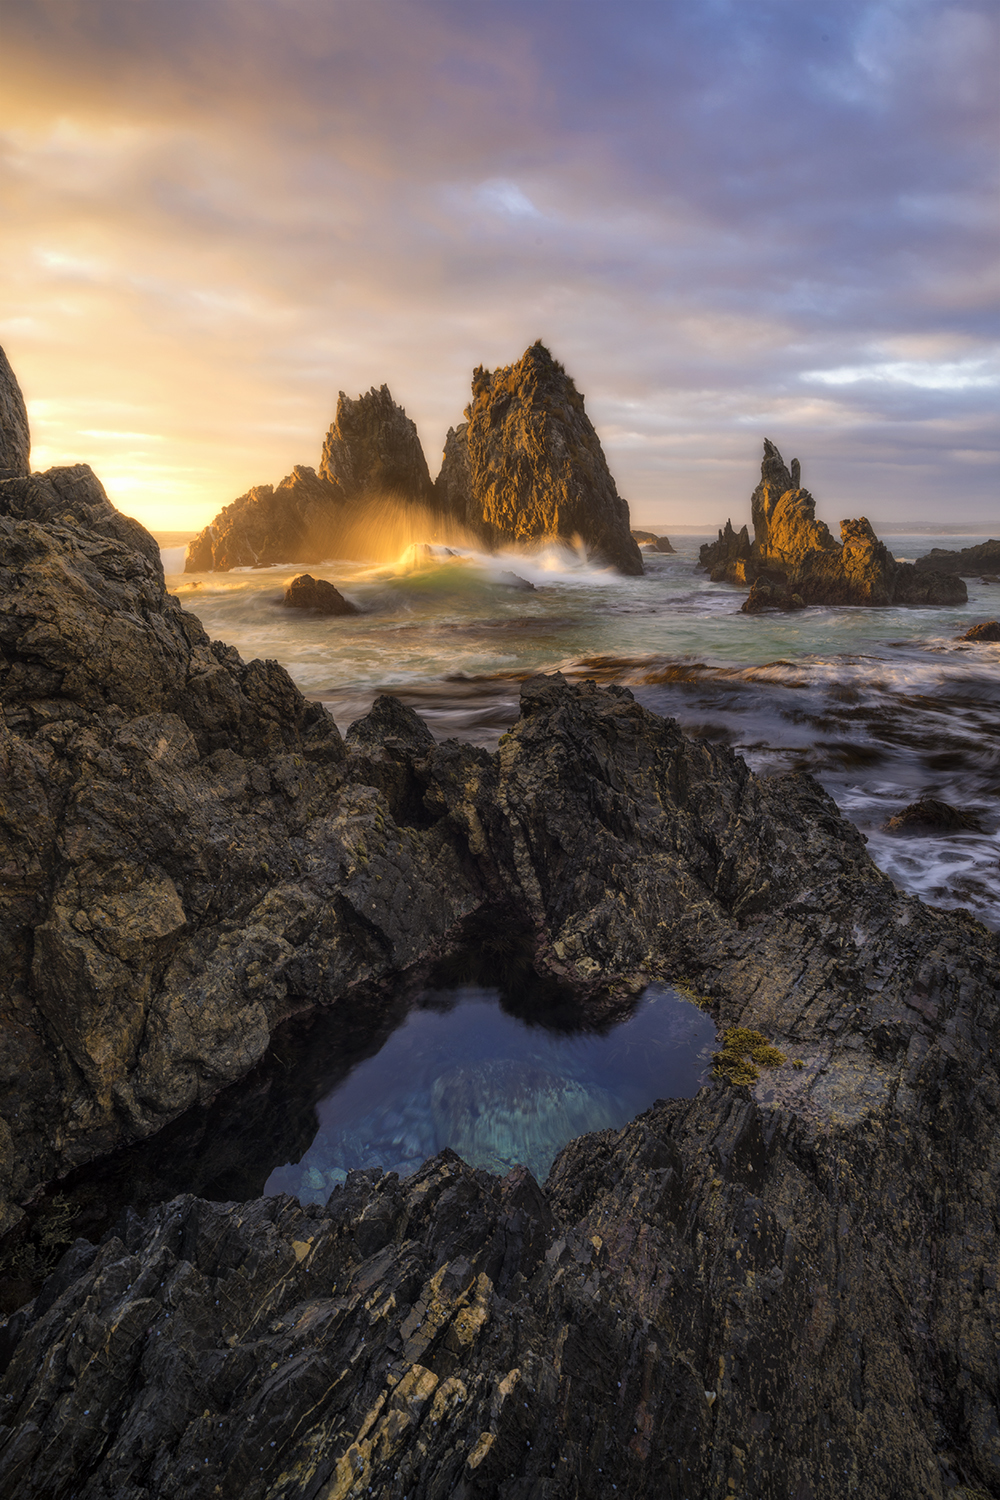 Sea stacks at dawn, Bermagui - Camel Rock